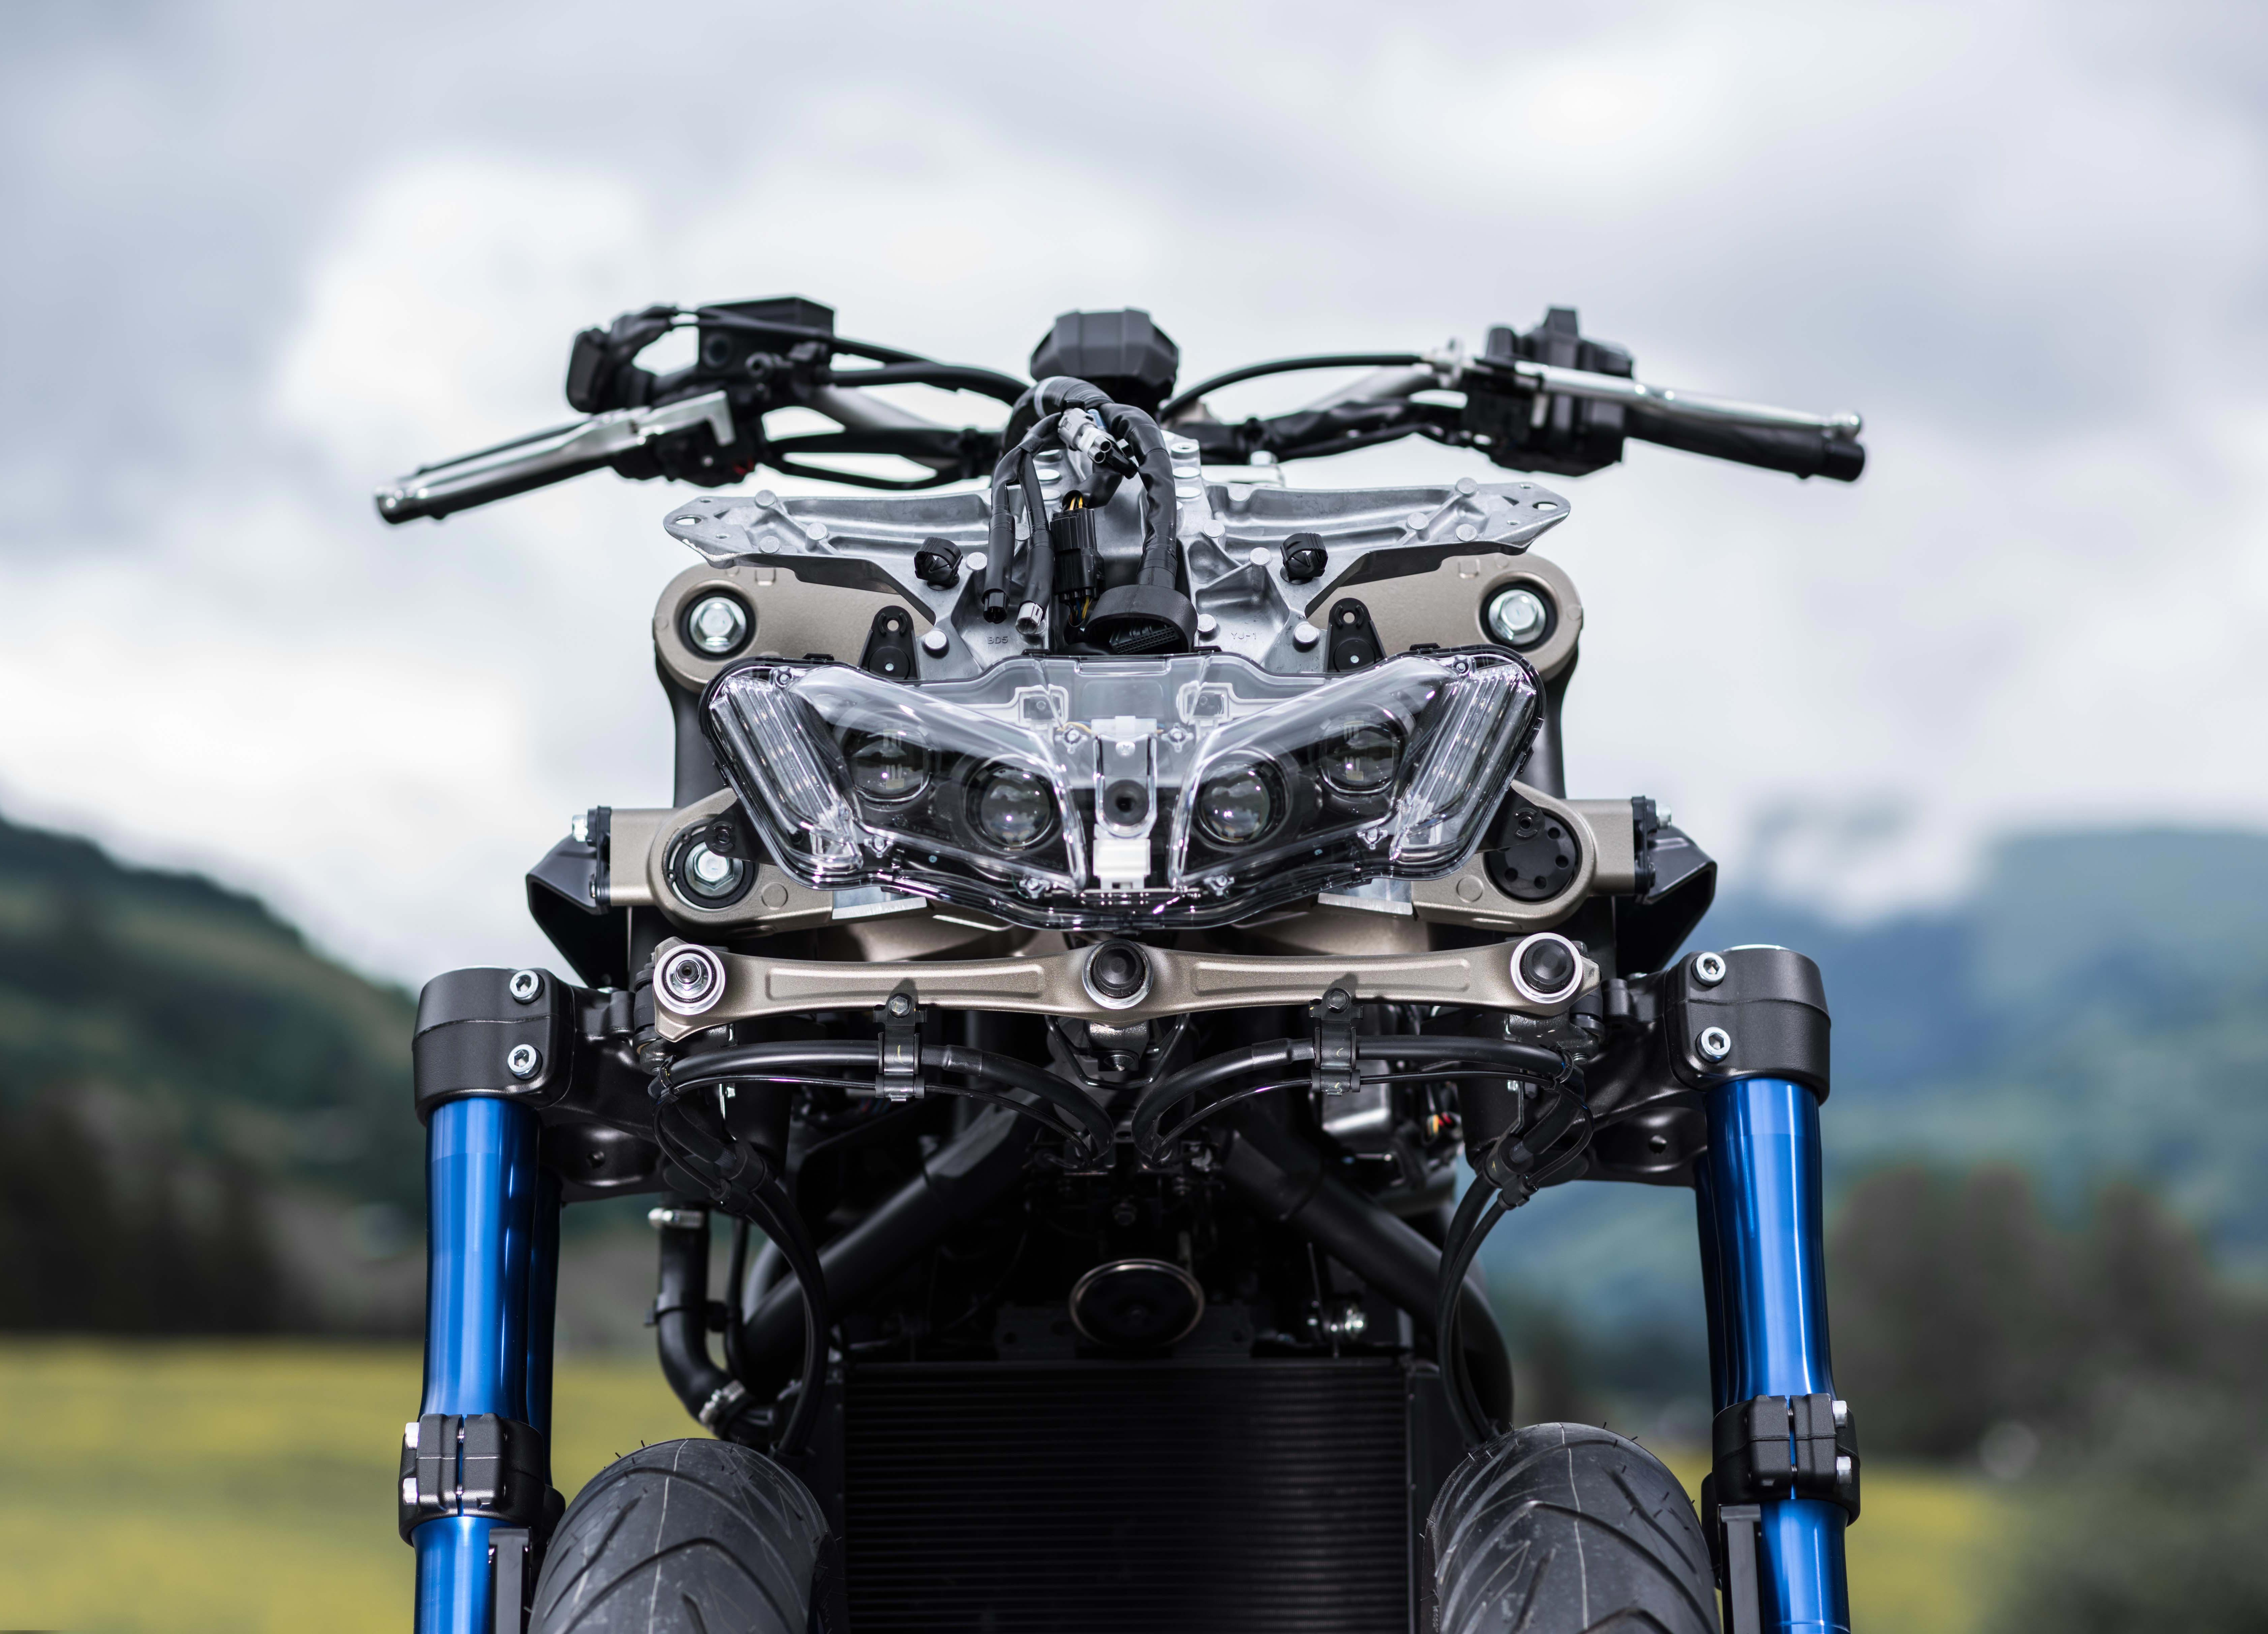 What Does The Yamaha Niken Look Like Naked Asphalt Rubber